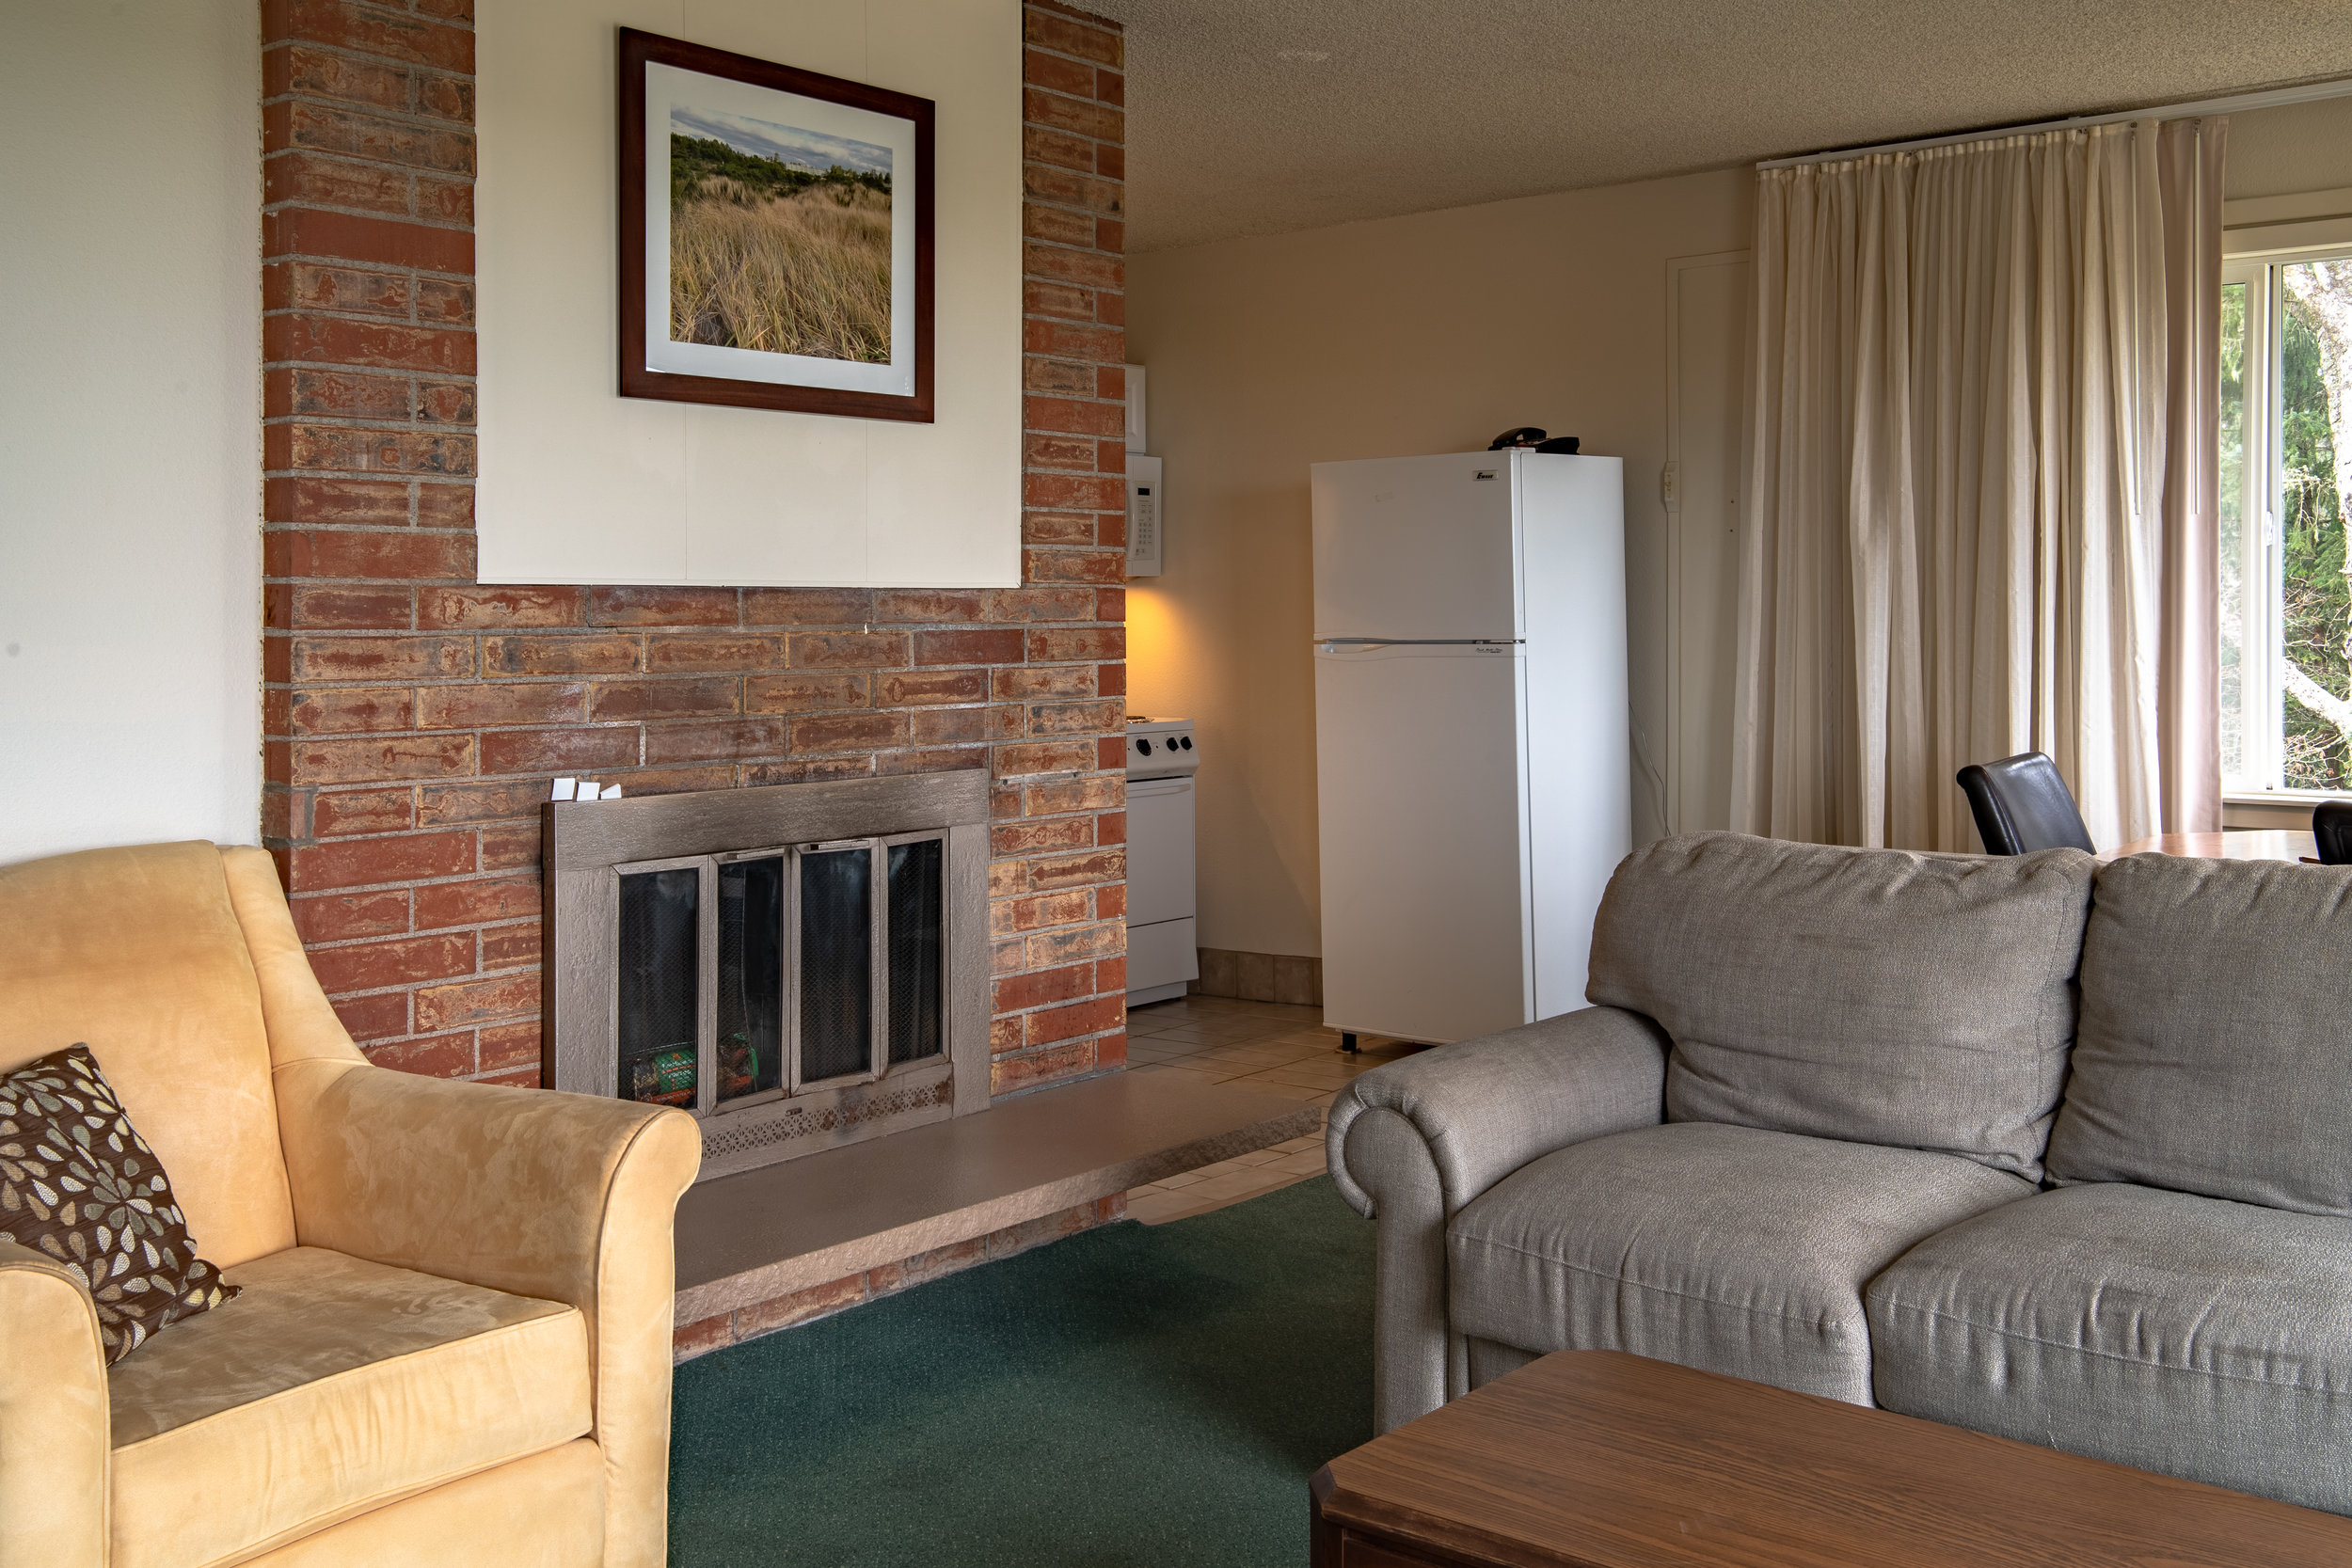 Fireplace & Kitchen - Enjoy a full kitchen, dining table, living room and fireplace.